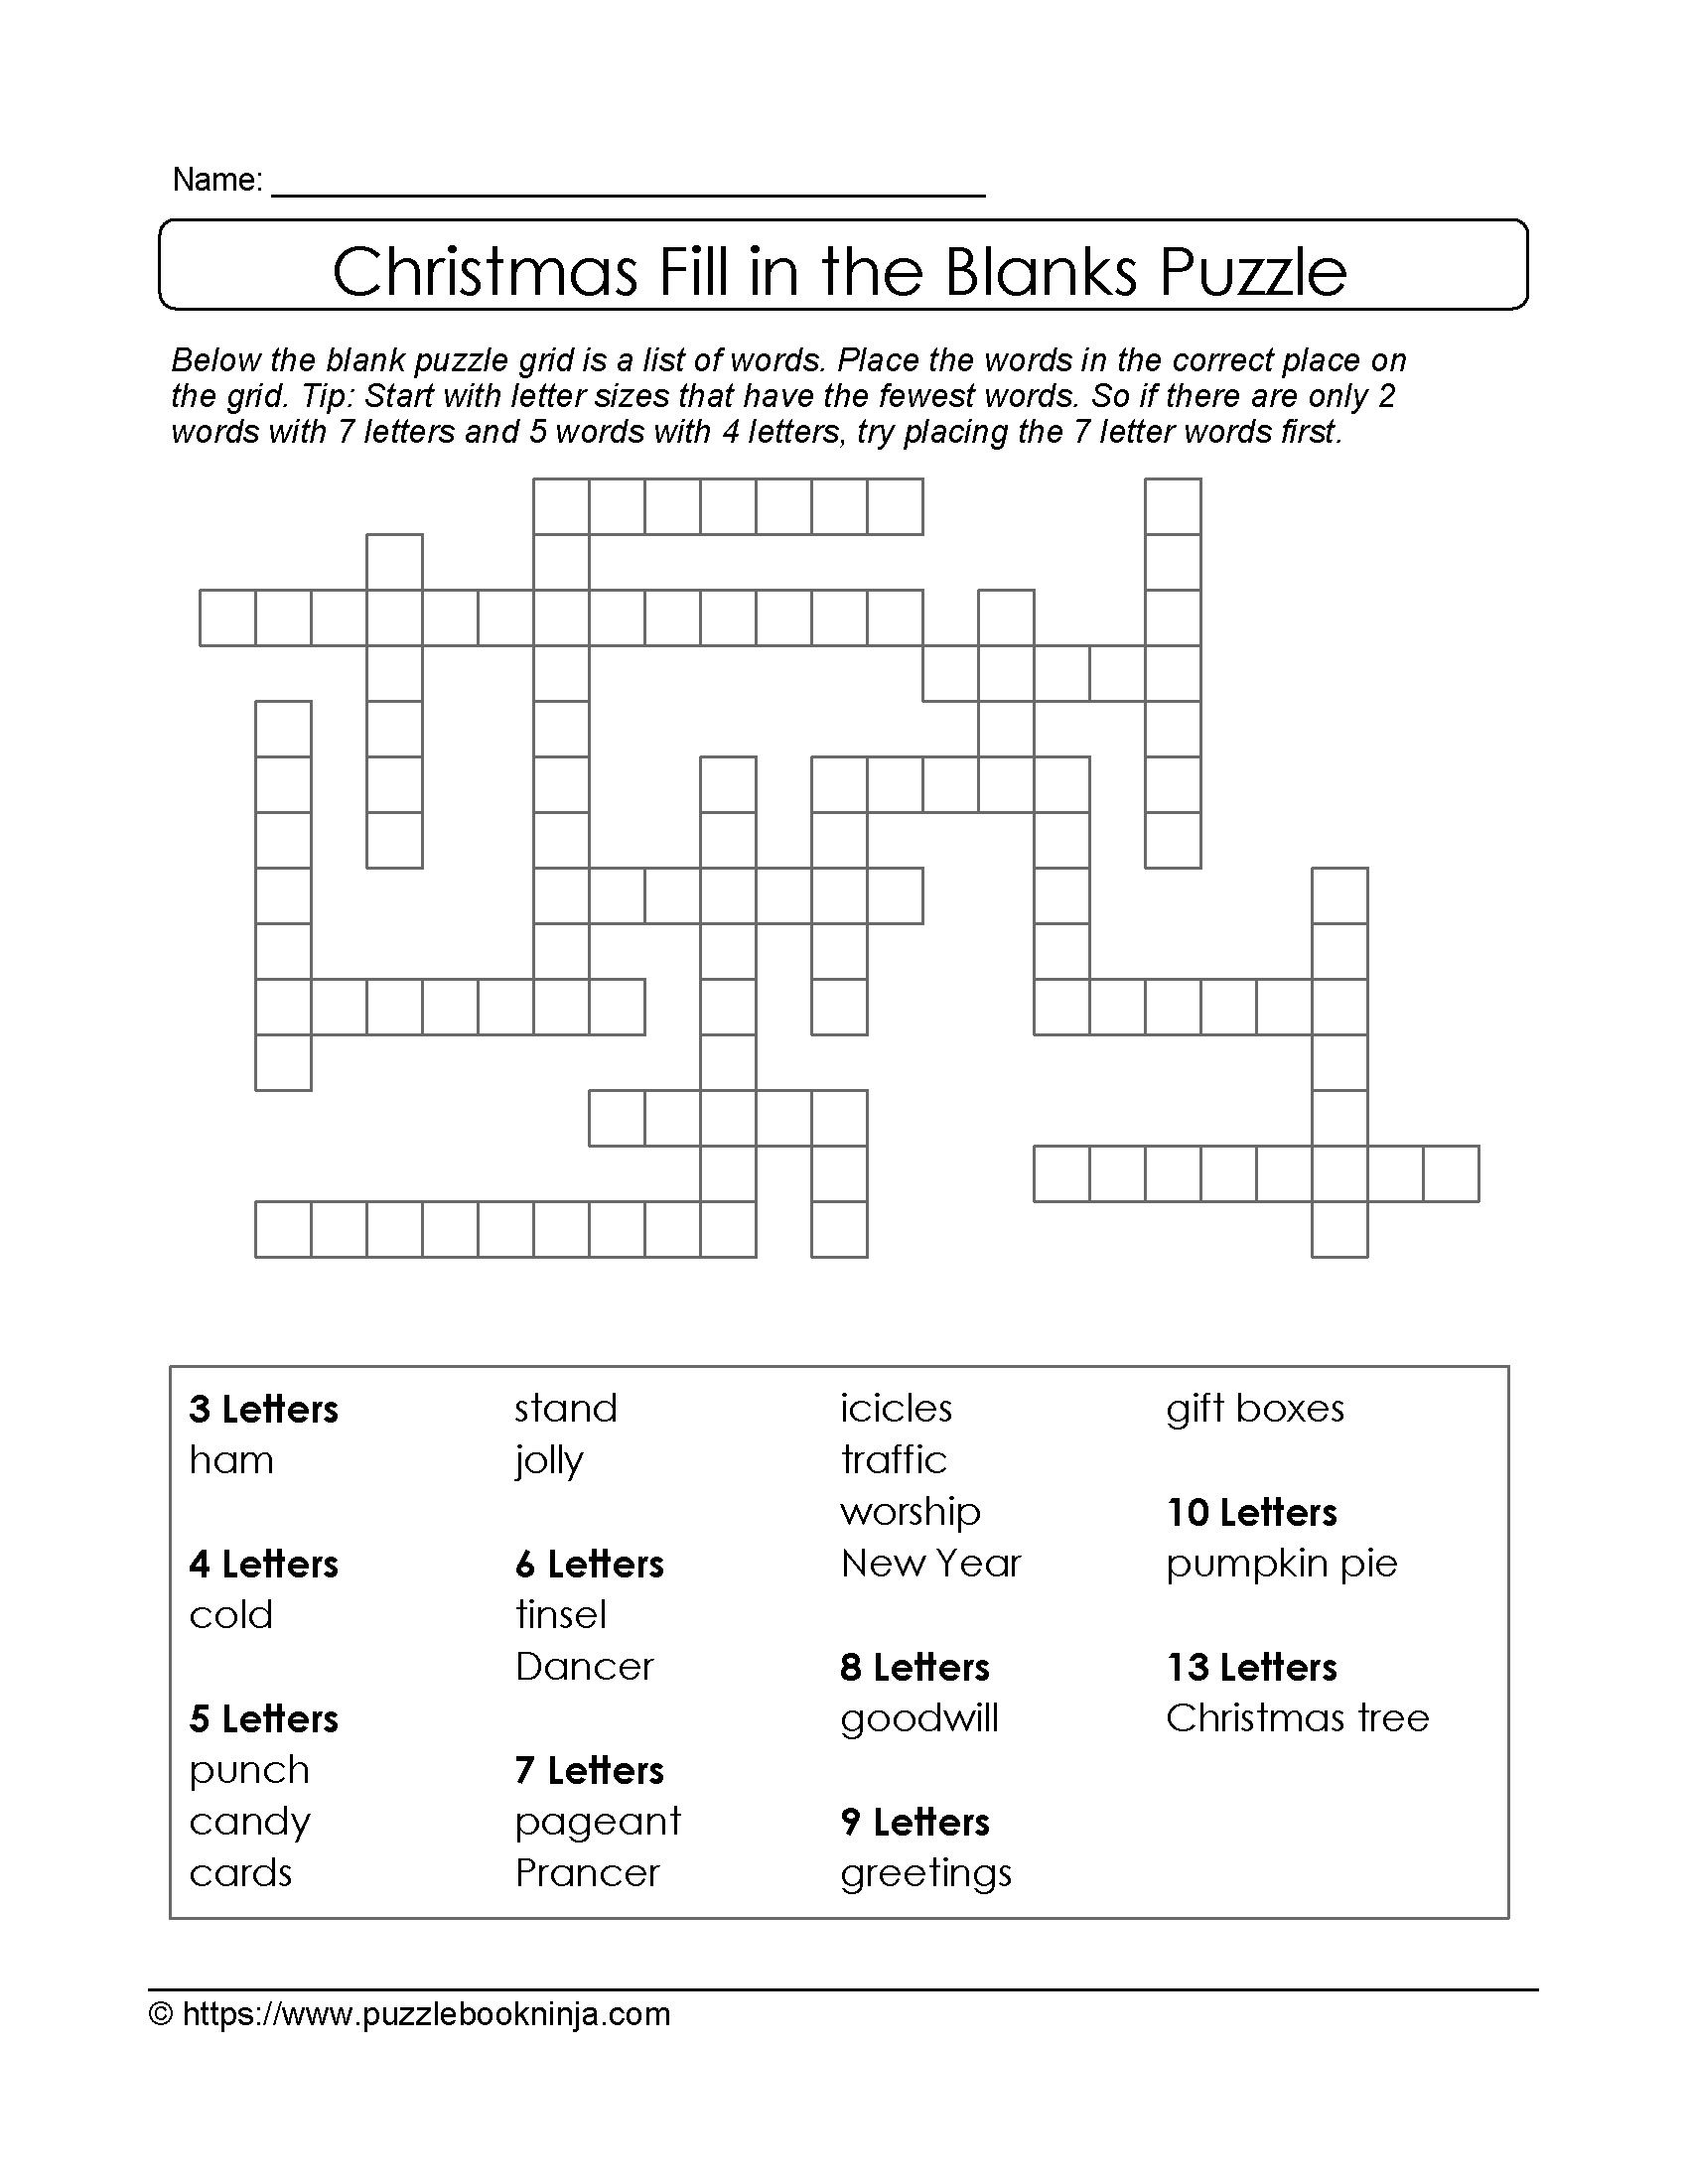 Freebie Xmas Puzzle To Print. Fill In The Blanks Crossword Like - Printable Blank Crossword Puzzle Template